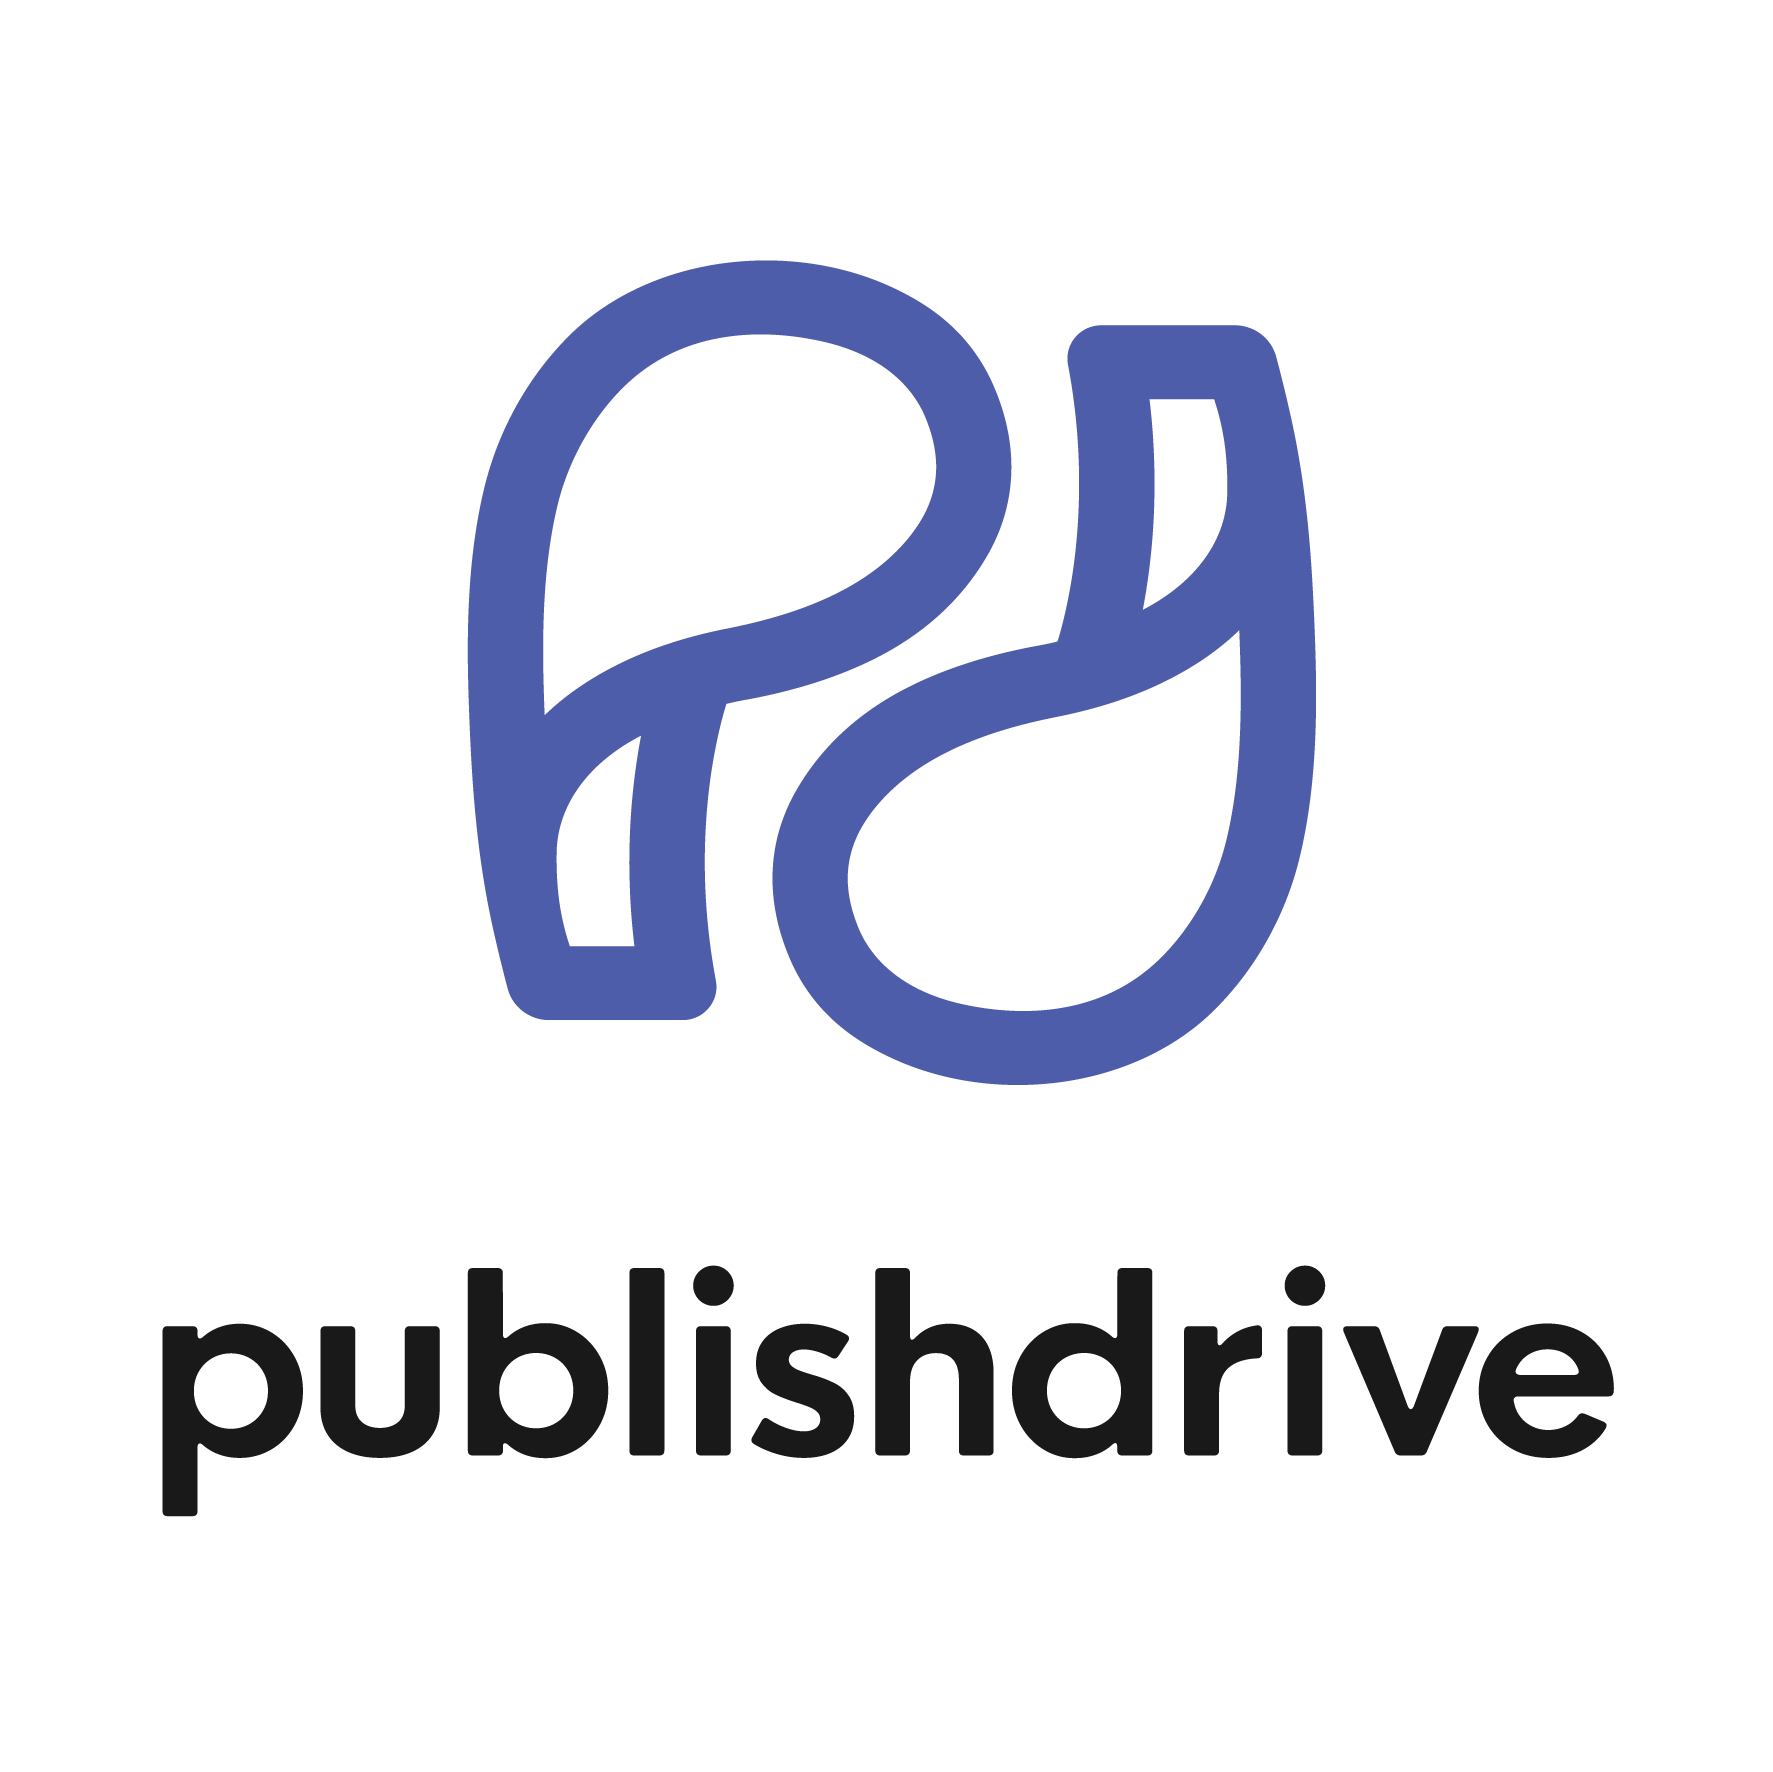 PUBLISHDRIVE ANNOUNCES A NEW BUILT-IN BOOK MARKETING SUITE FOR SELF-PUBLISHED AUTHORS